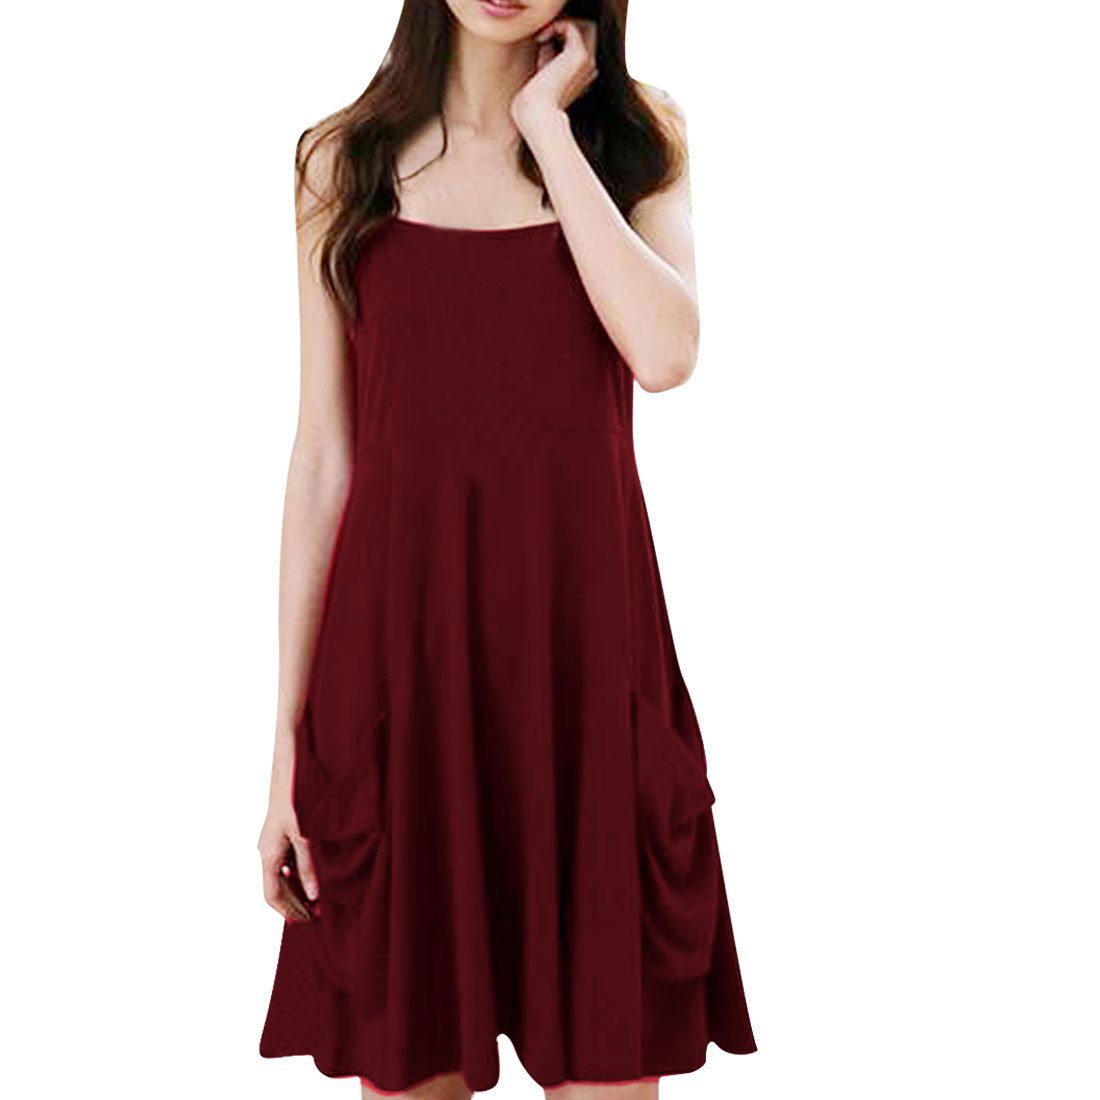 Ladies Adjustable Strap Off The Shoulder Pockets Below Dress Burgundy XS